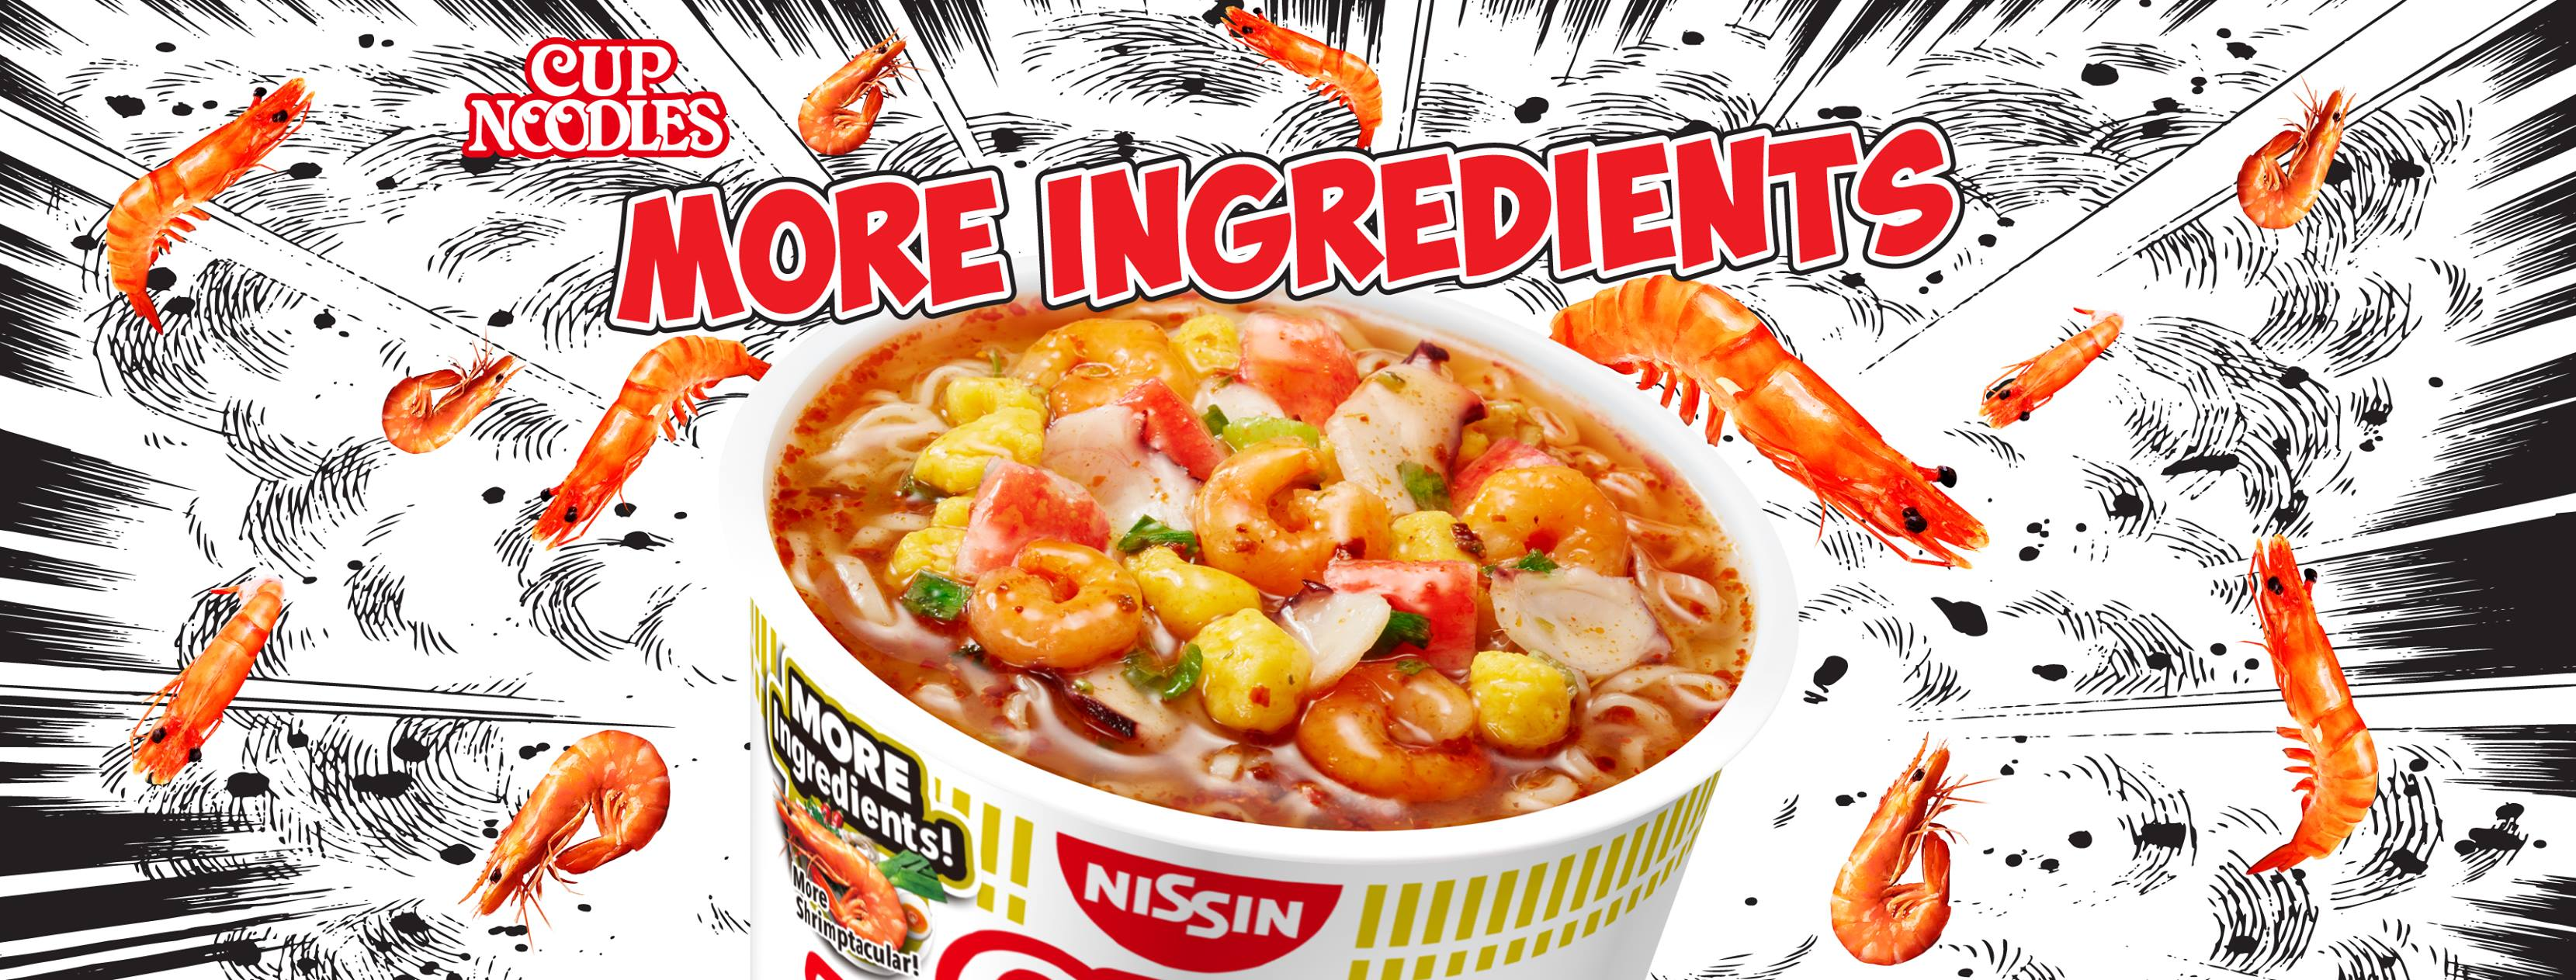 Nissin SEO by grab essentials